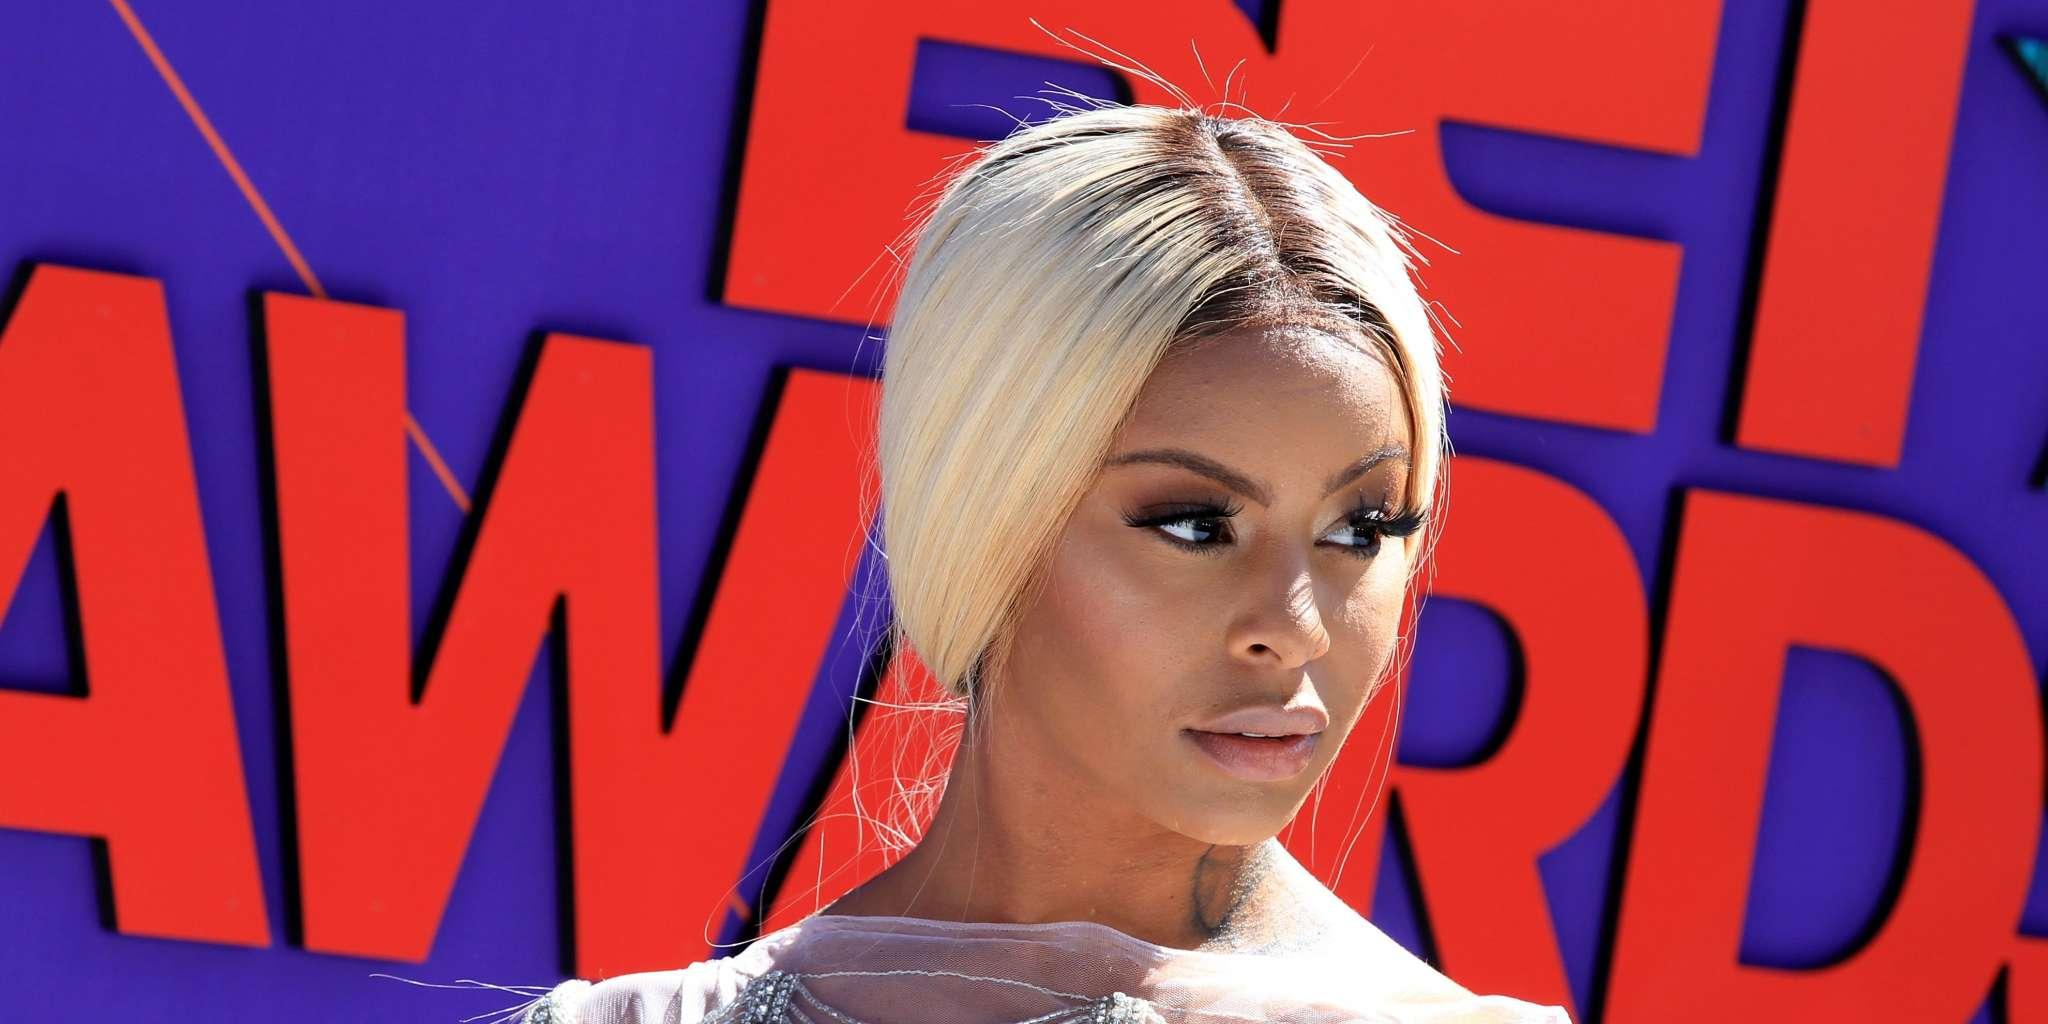 Alexis Skyy Responded After Former Employee Alleged Her Last Paycheck Bounced